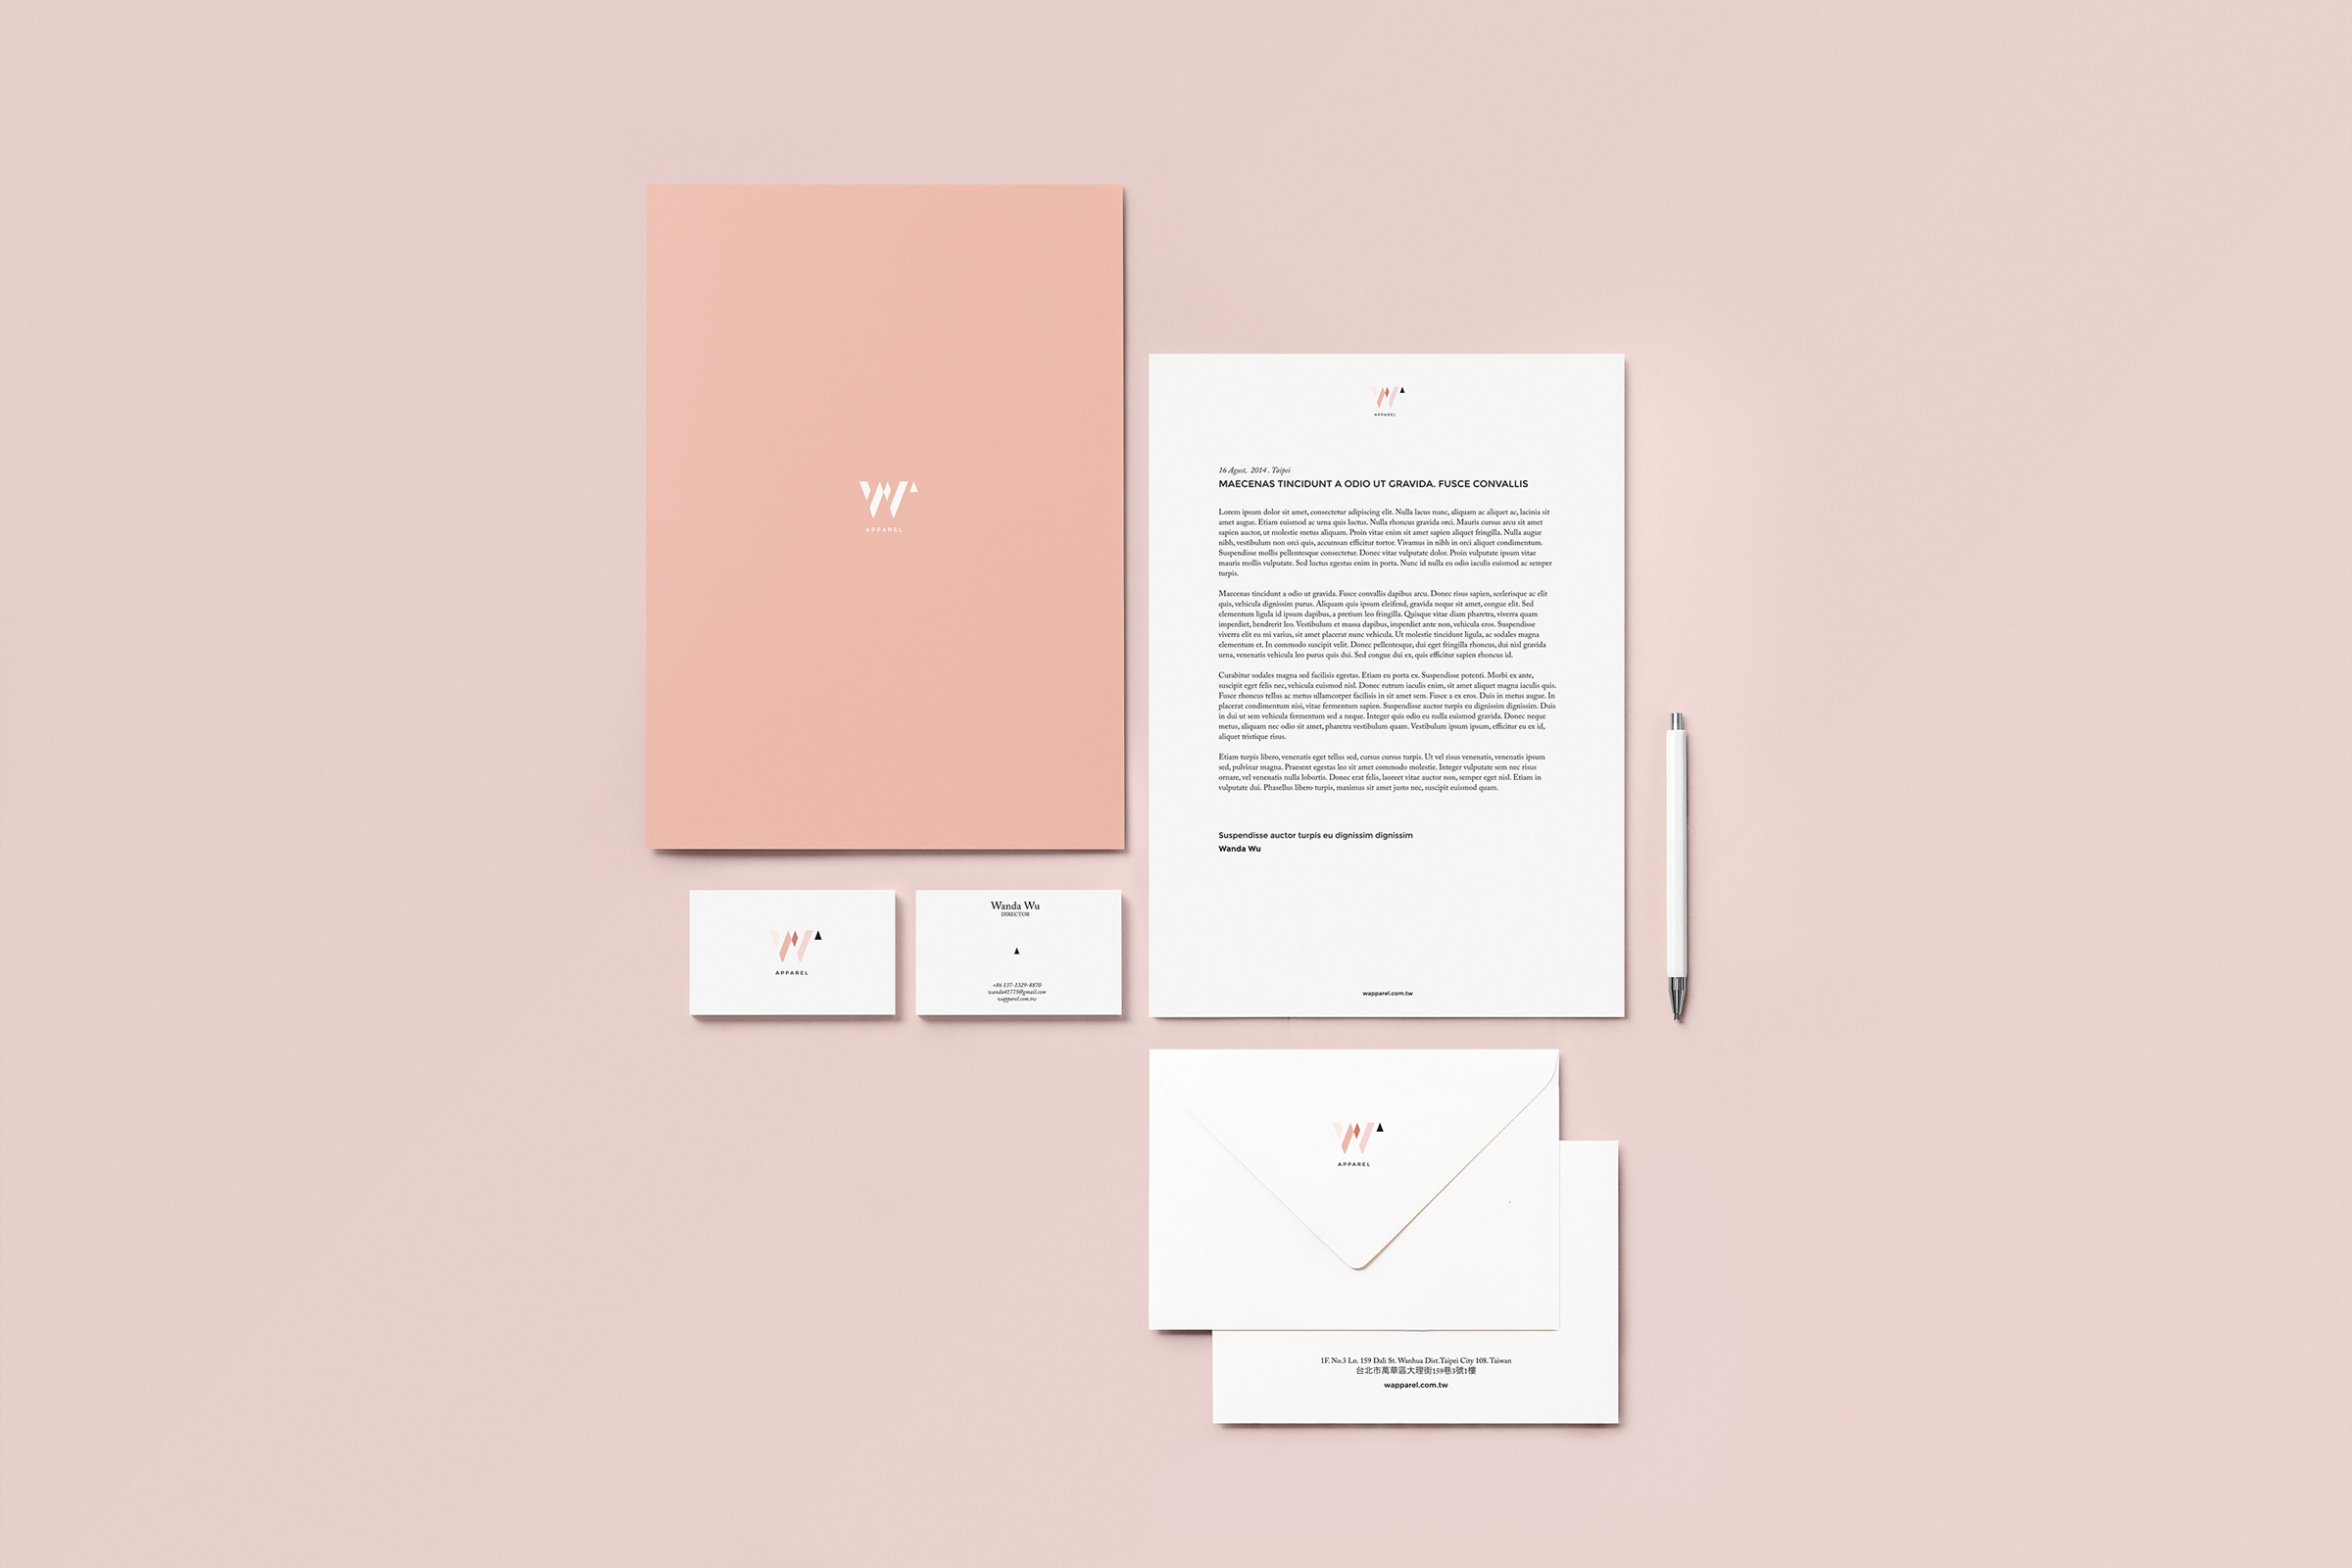 W-apparel_cloth_brand_stationary_x